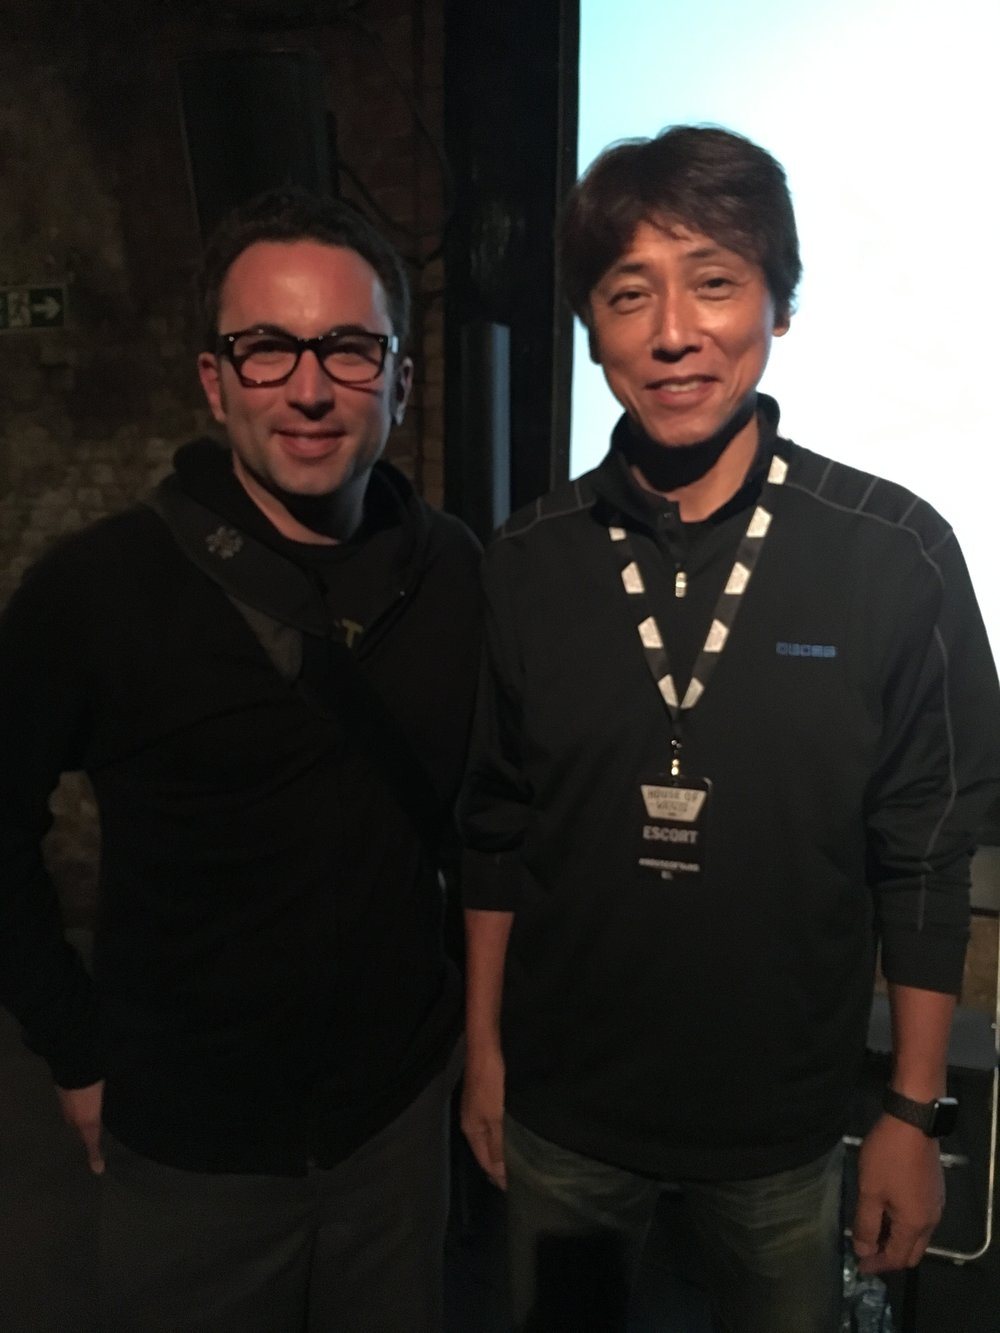 Kerry - NCA with Yoshi Ikegami - Boss